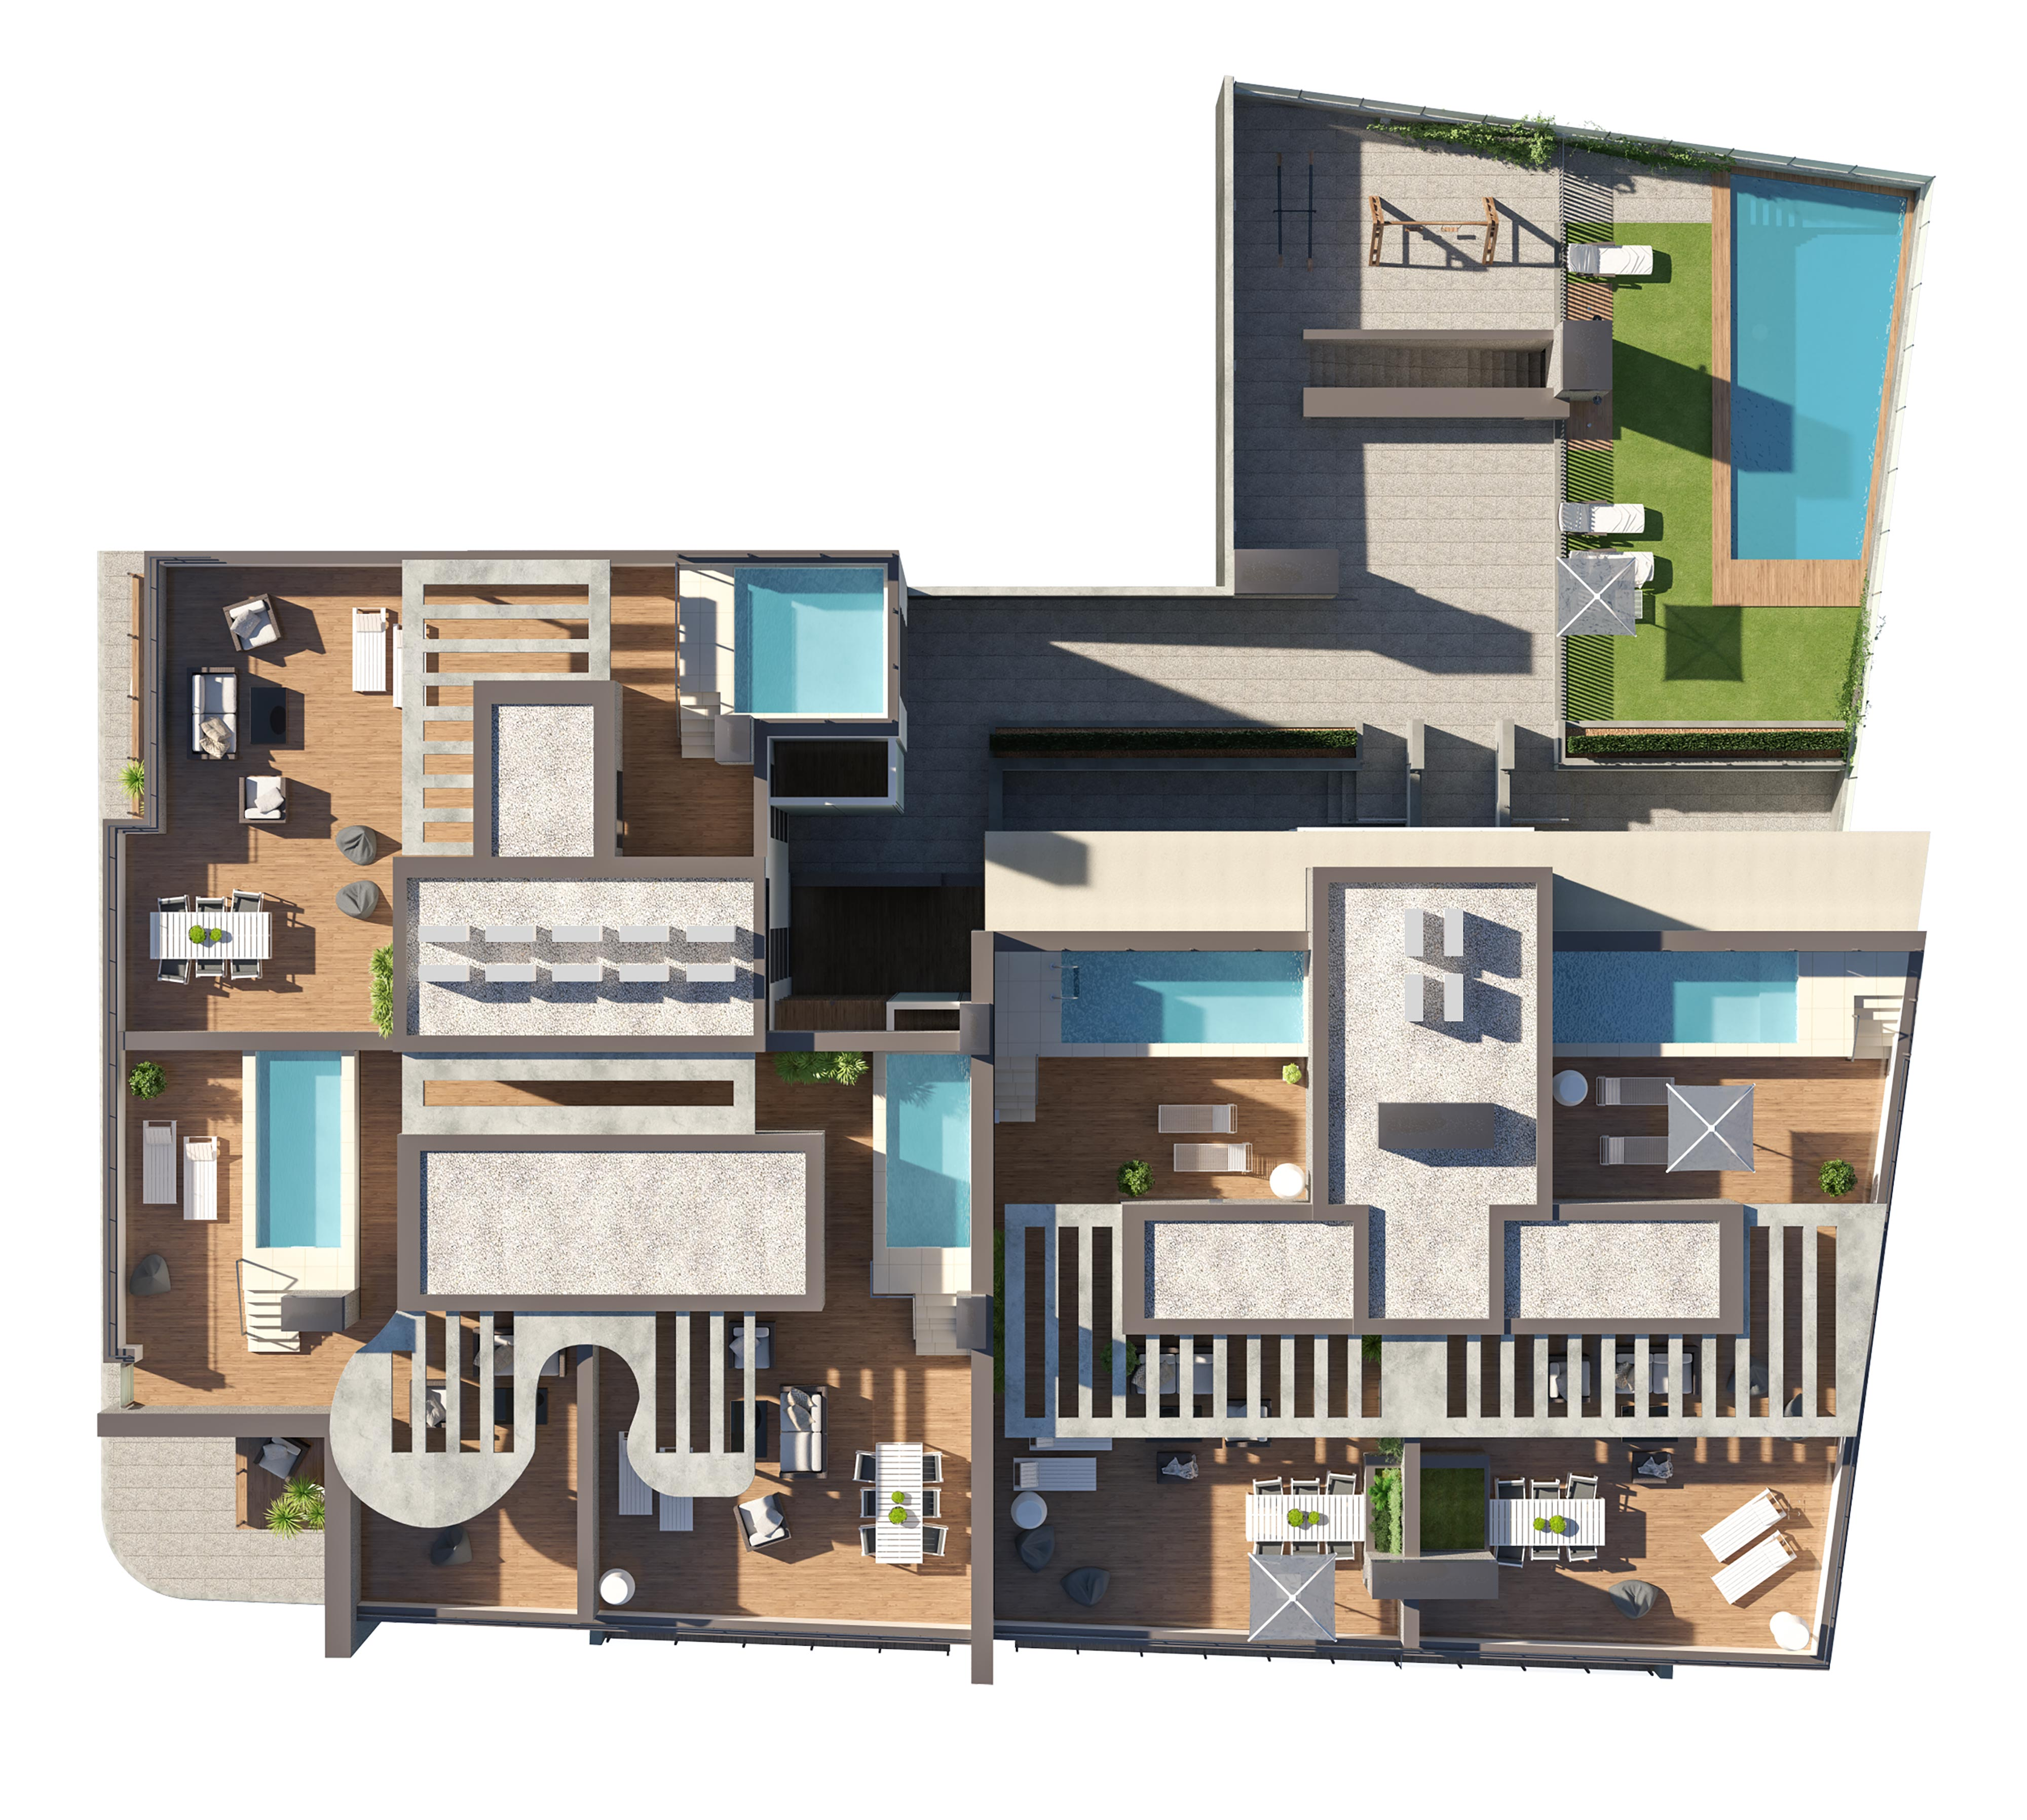 render top view of block of flats by GAYARRE infografia